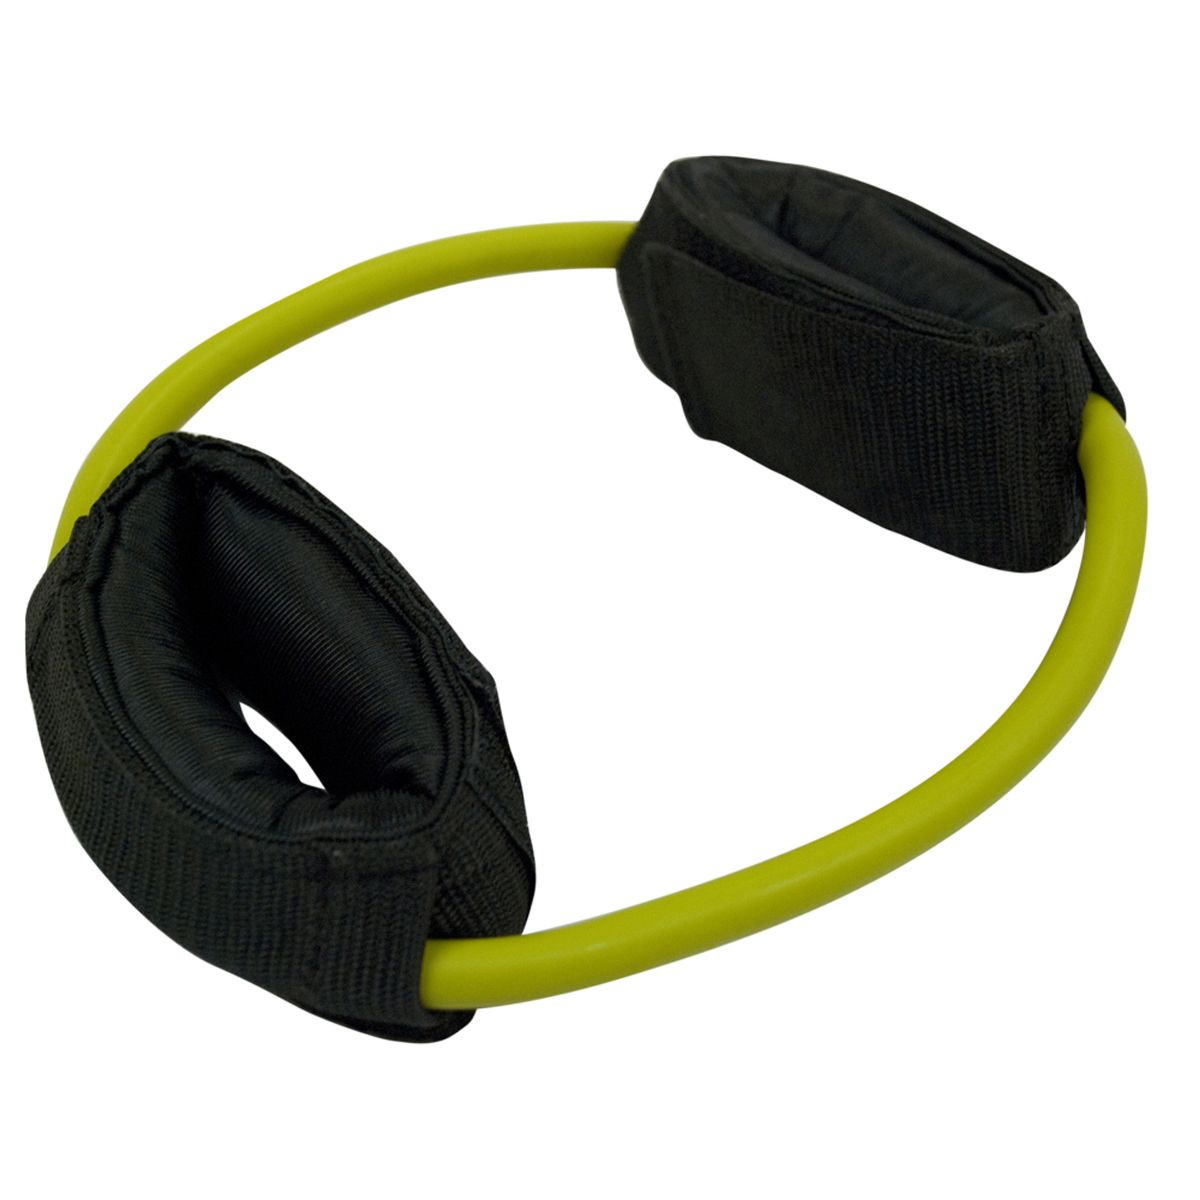 What I Found Out: Resistance Bands With Ankle Straps